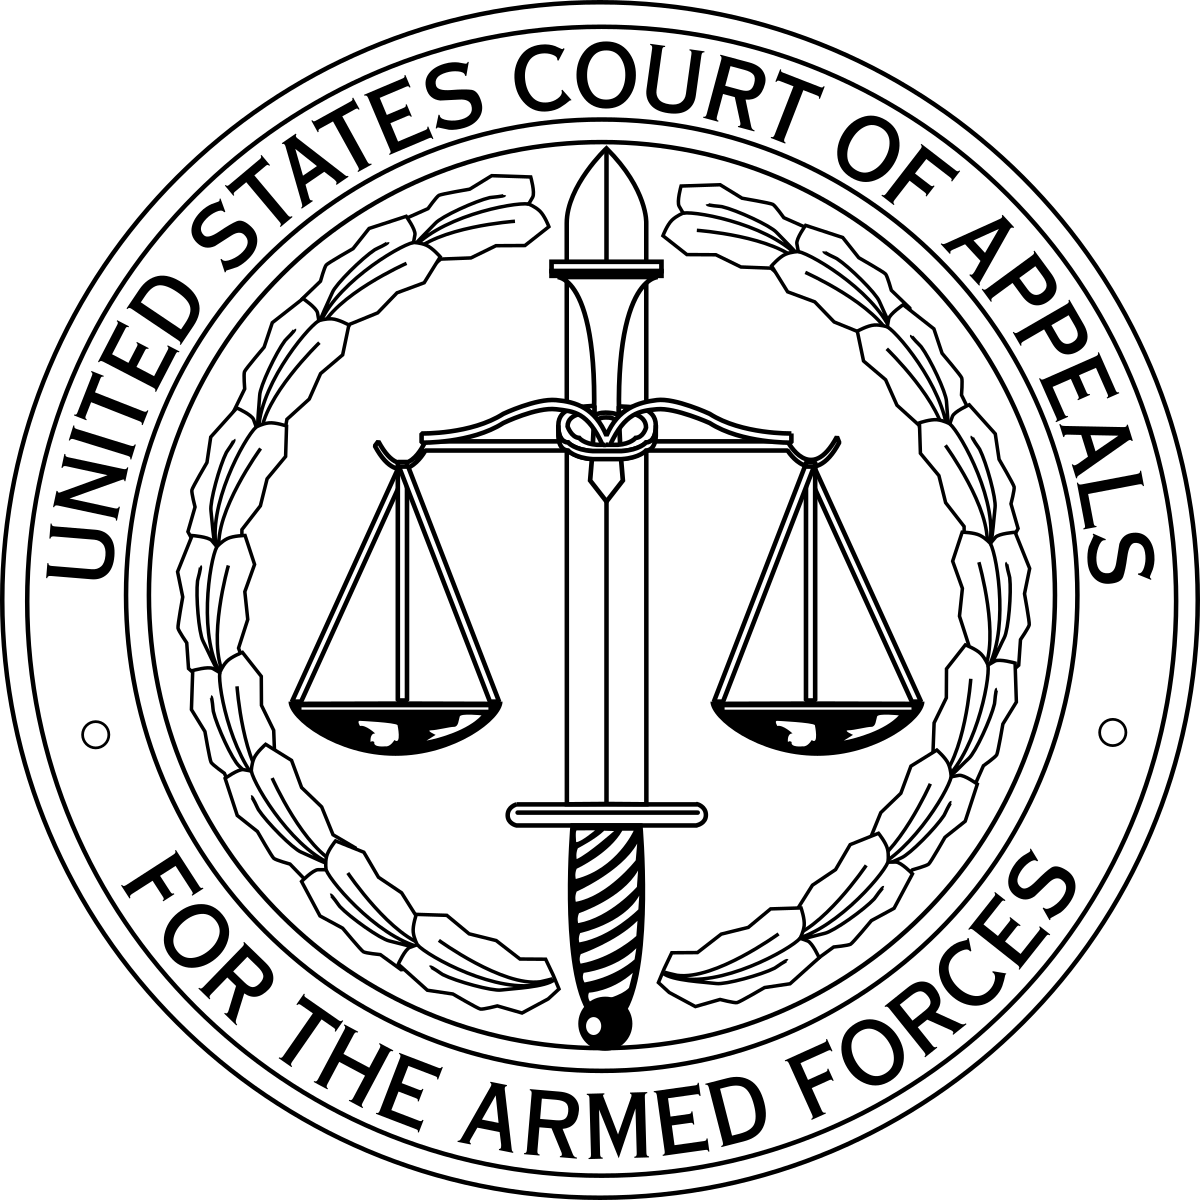 Seal_of_the_United_States_Court_of_Appeals_for_the_Armed_Forces